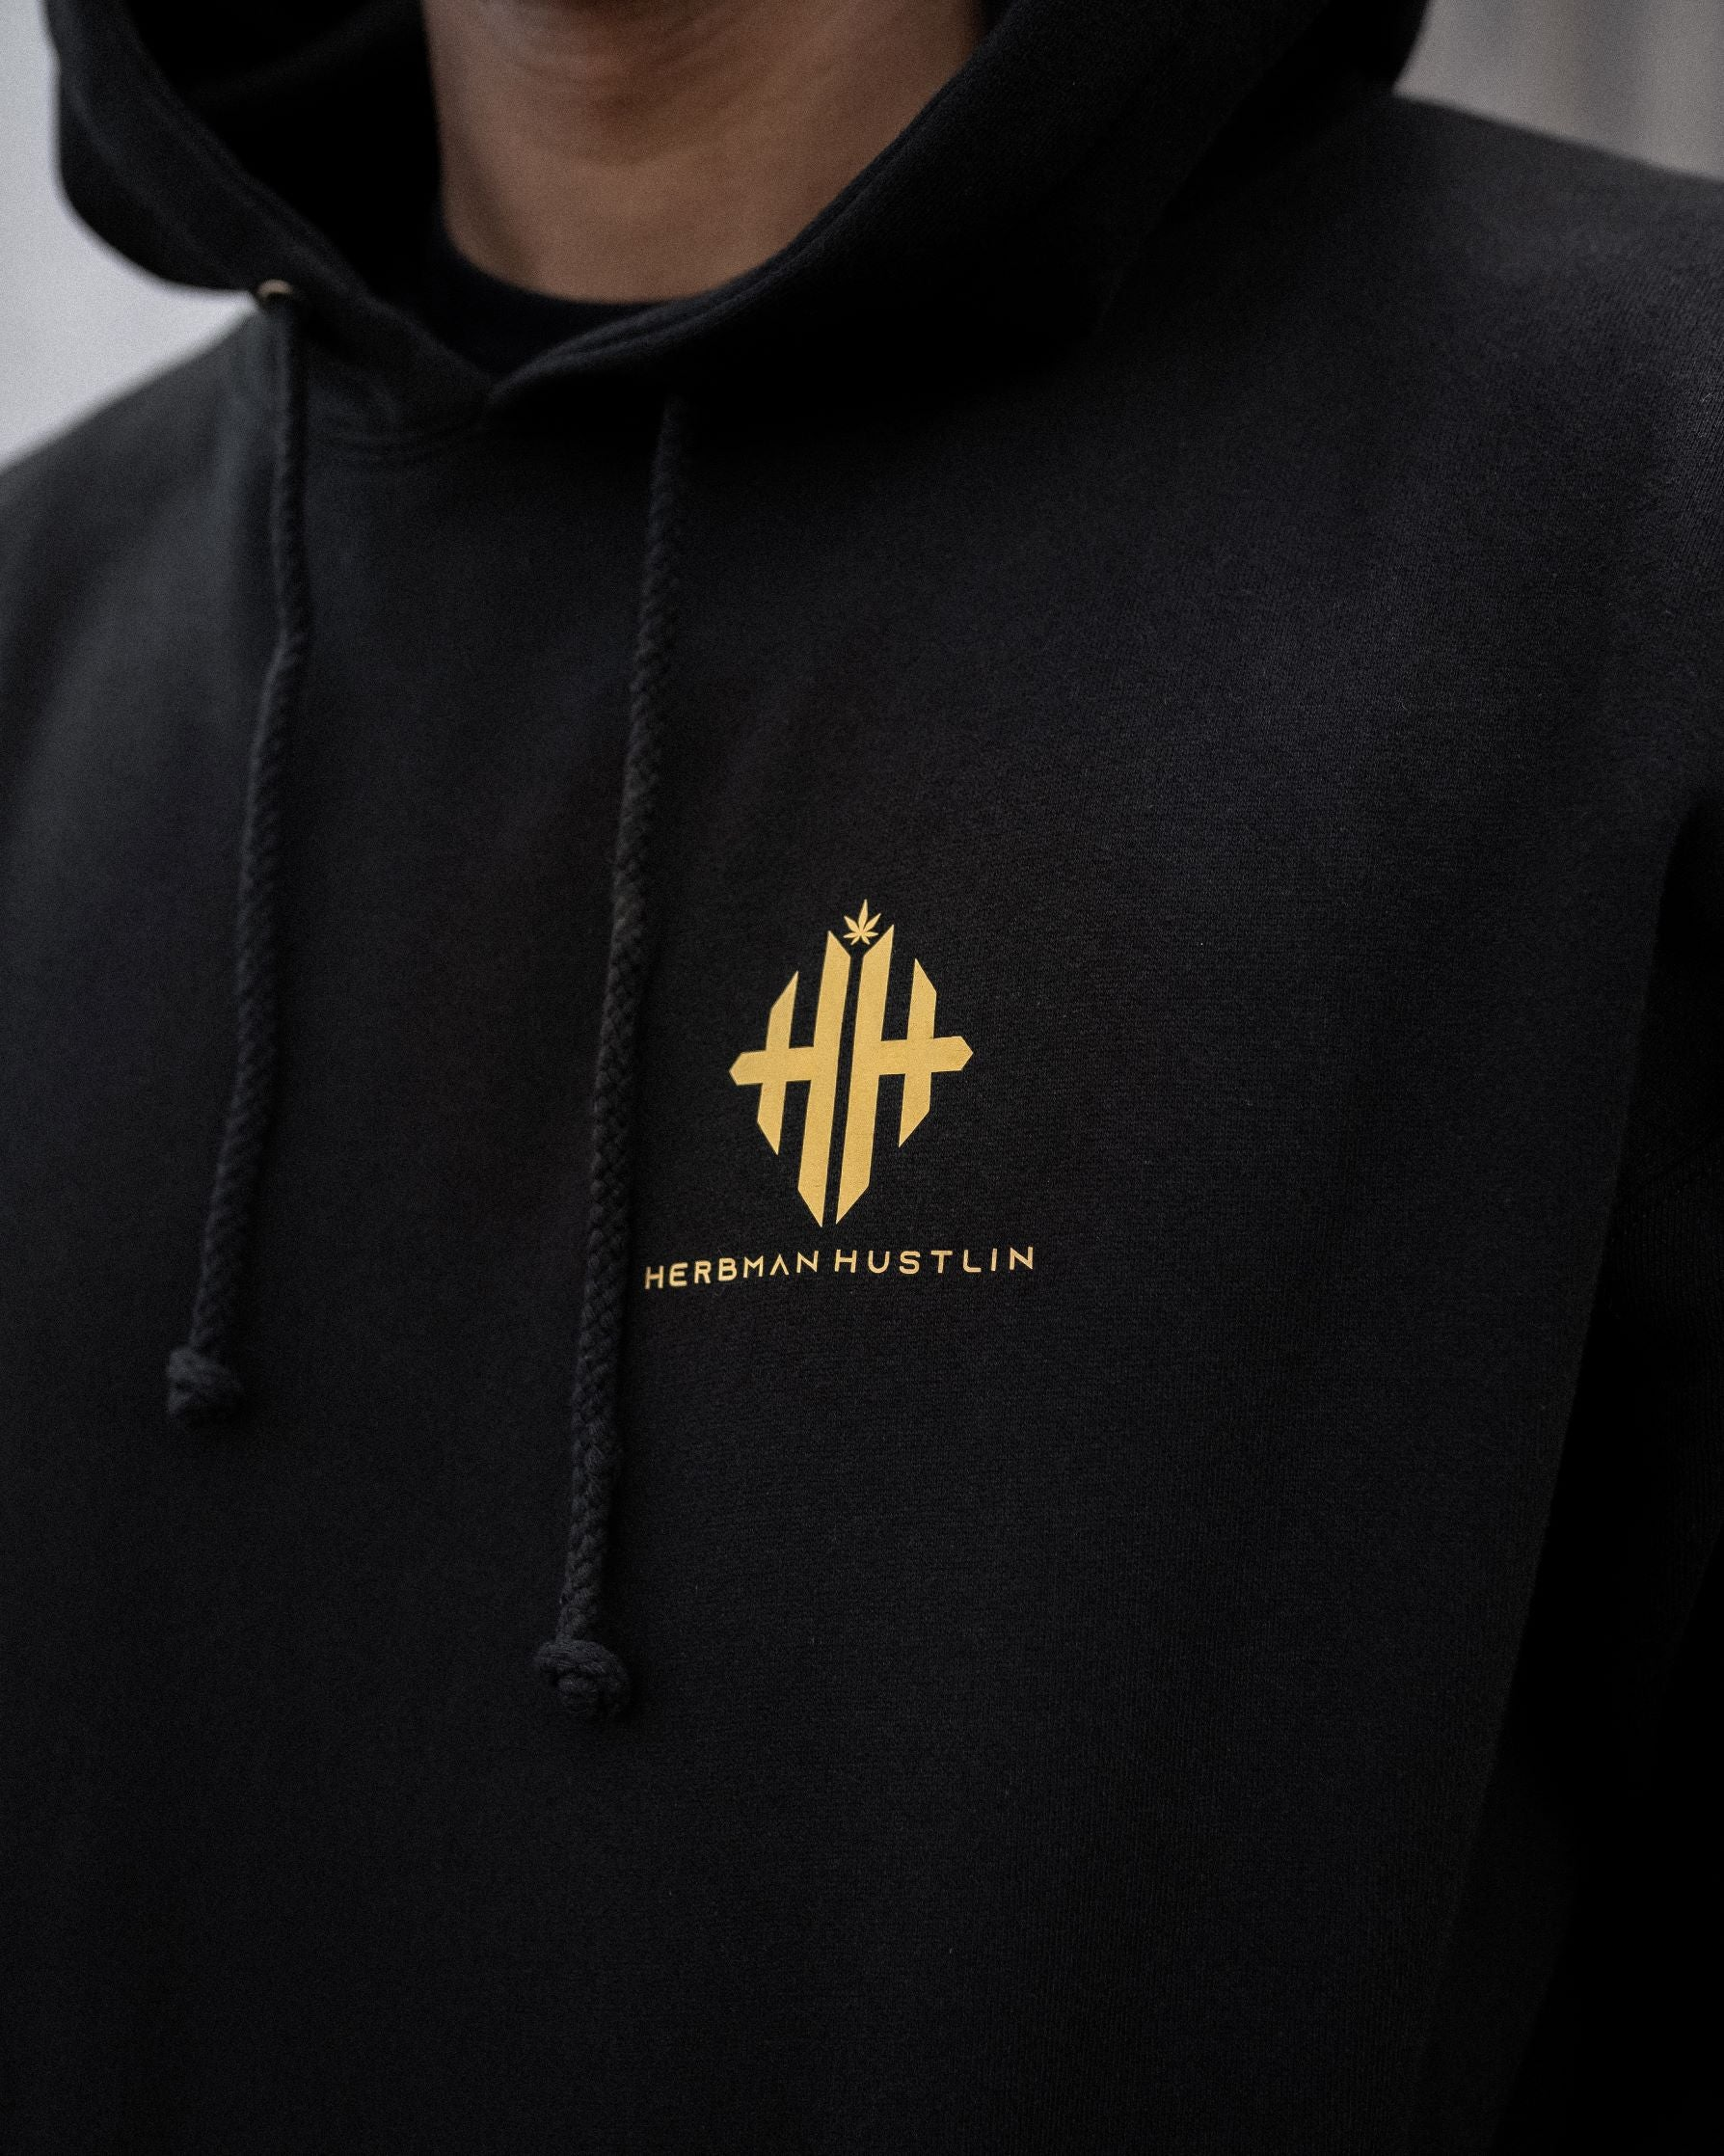 Herbman Hustlin Monogram Hoodie - Black/Gold - Back